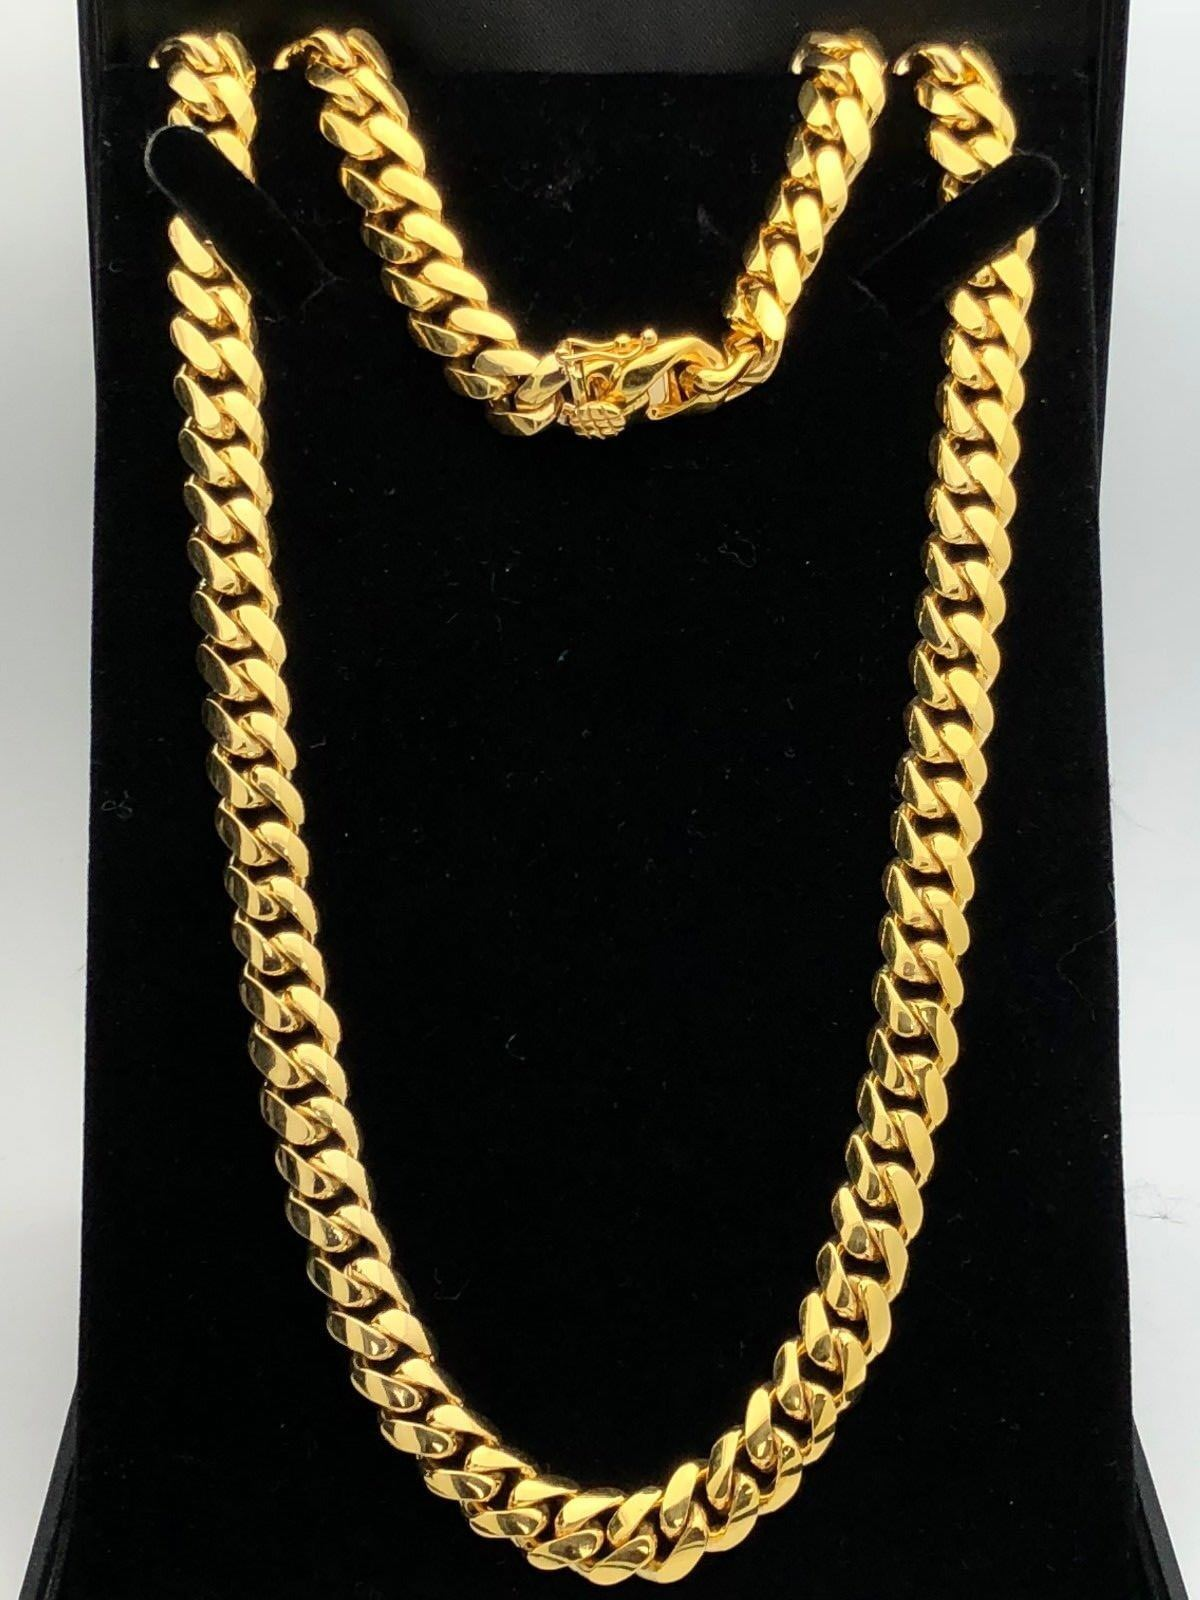 a717b34aa40a9 Details about Men's 10k Yellow Gold Solid Heavy Cuban Link Chain Necklace  24